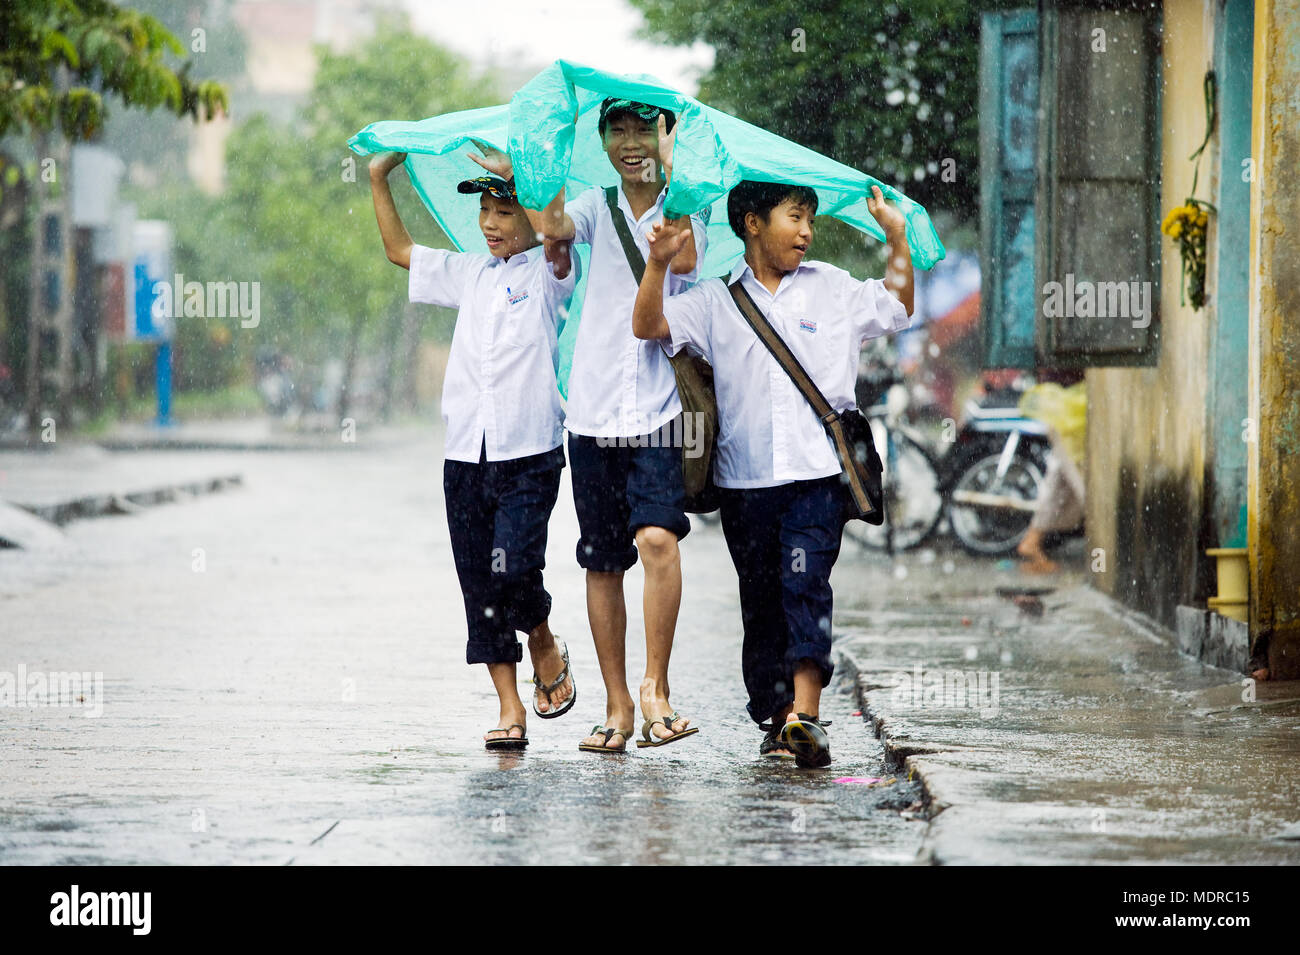 Hoi An, Vietnam; boys sheltering from a downpour in the rainy season - Stock Image